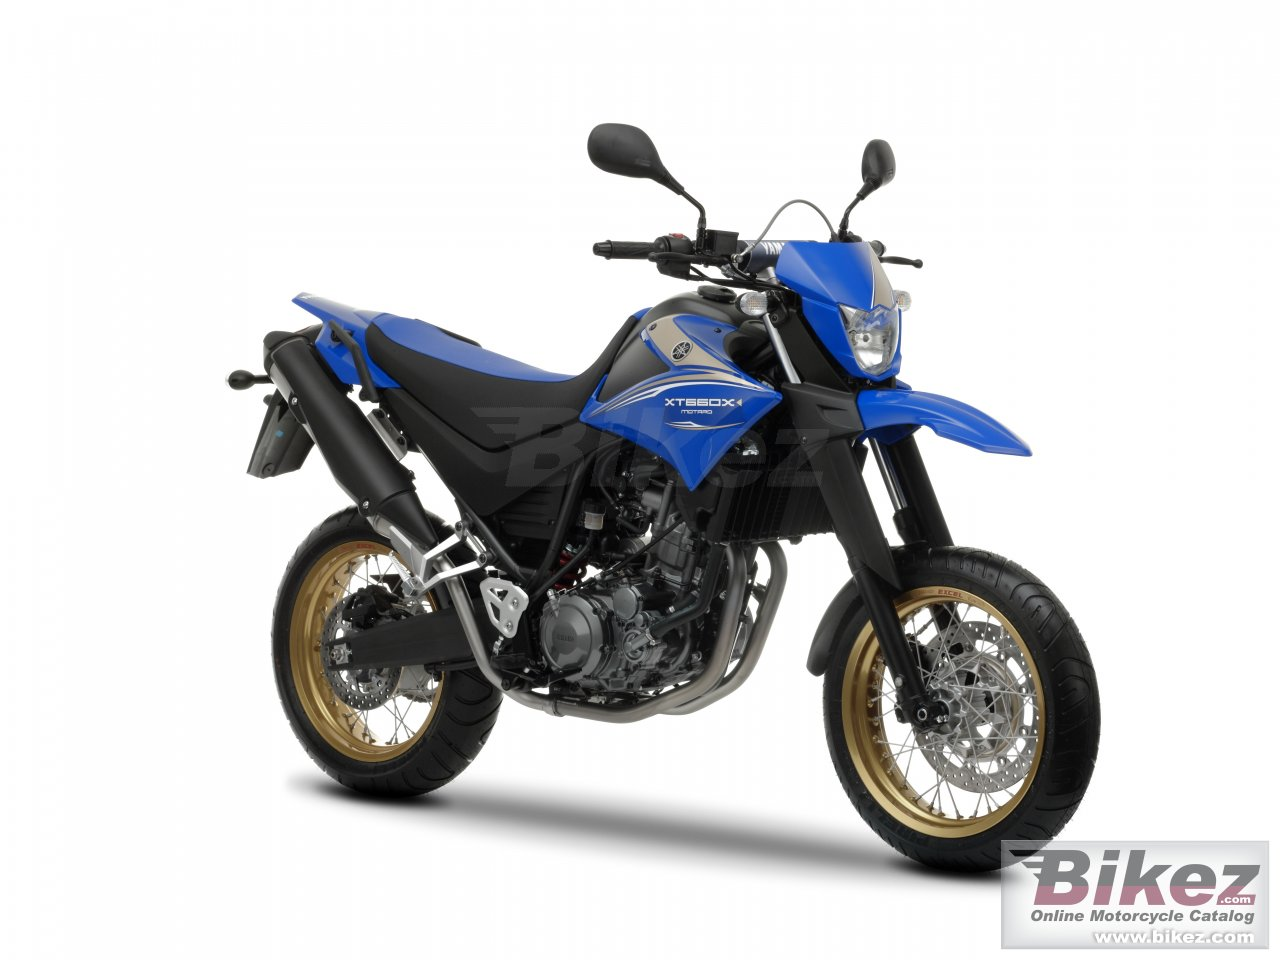 Big Yamaha xt660x picture and wallpaper from Bikez.com